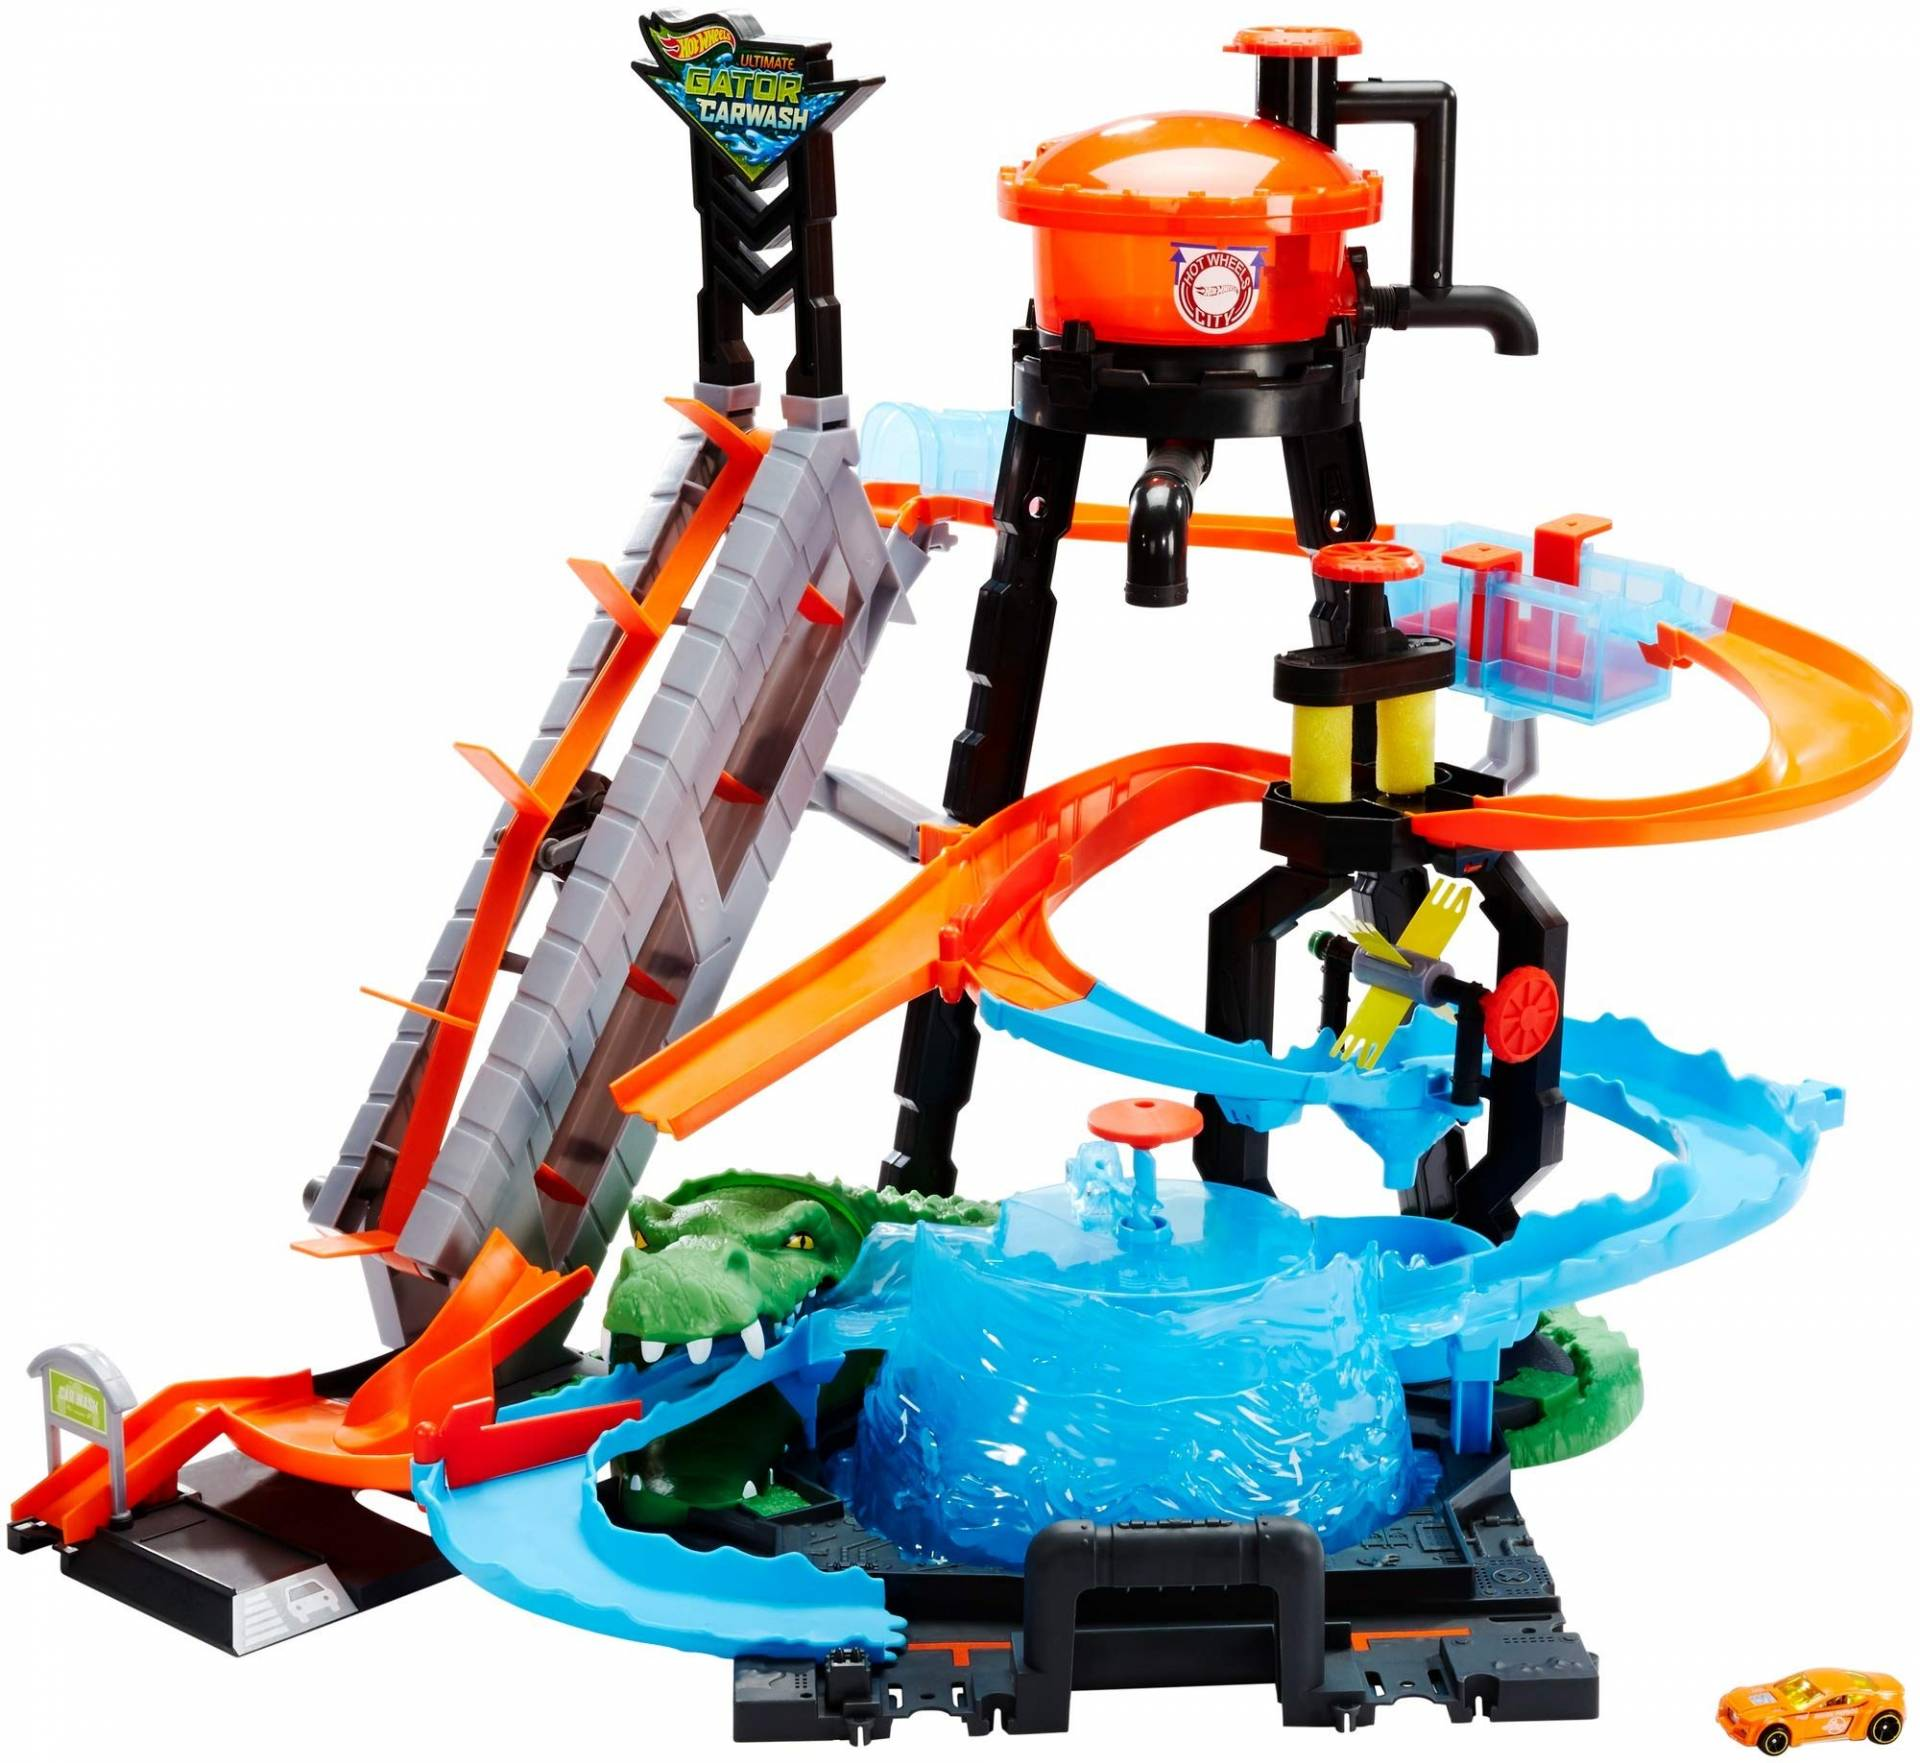 Hot Wheels Cocodrilo Destructor, pista de coches de juguete (Mattel FTB67) de Hot Wheels